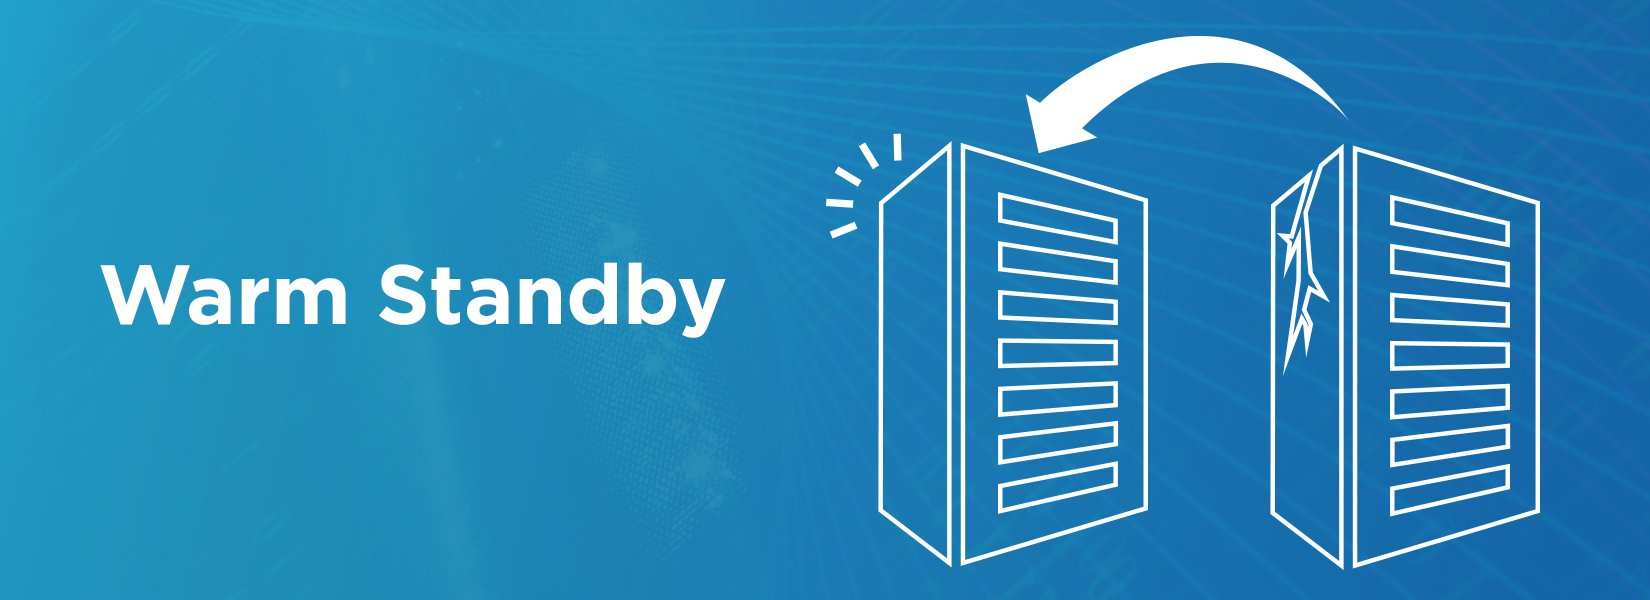 Warm Standby Archiving